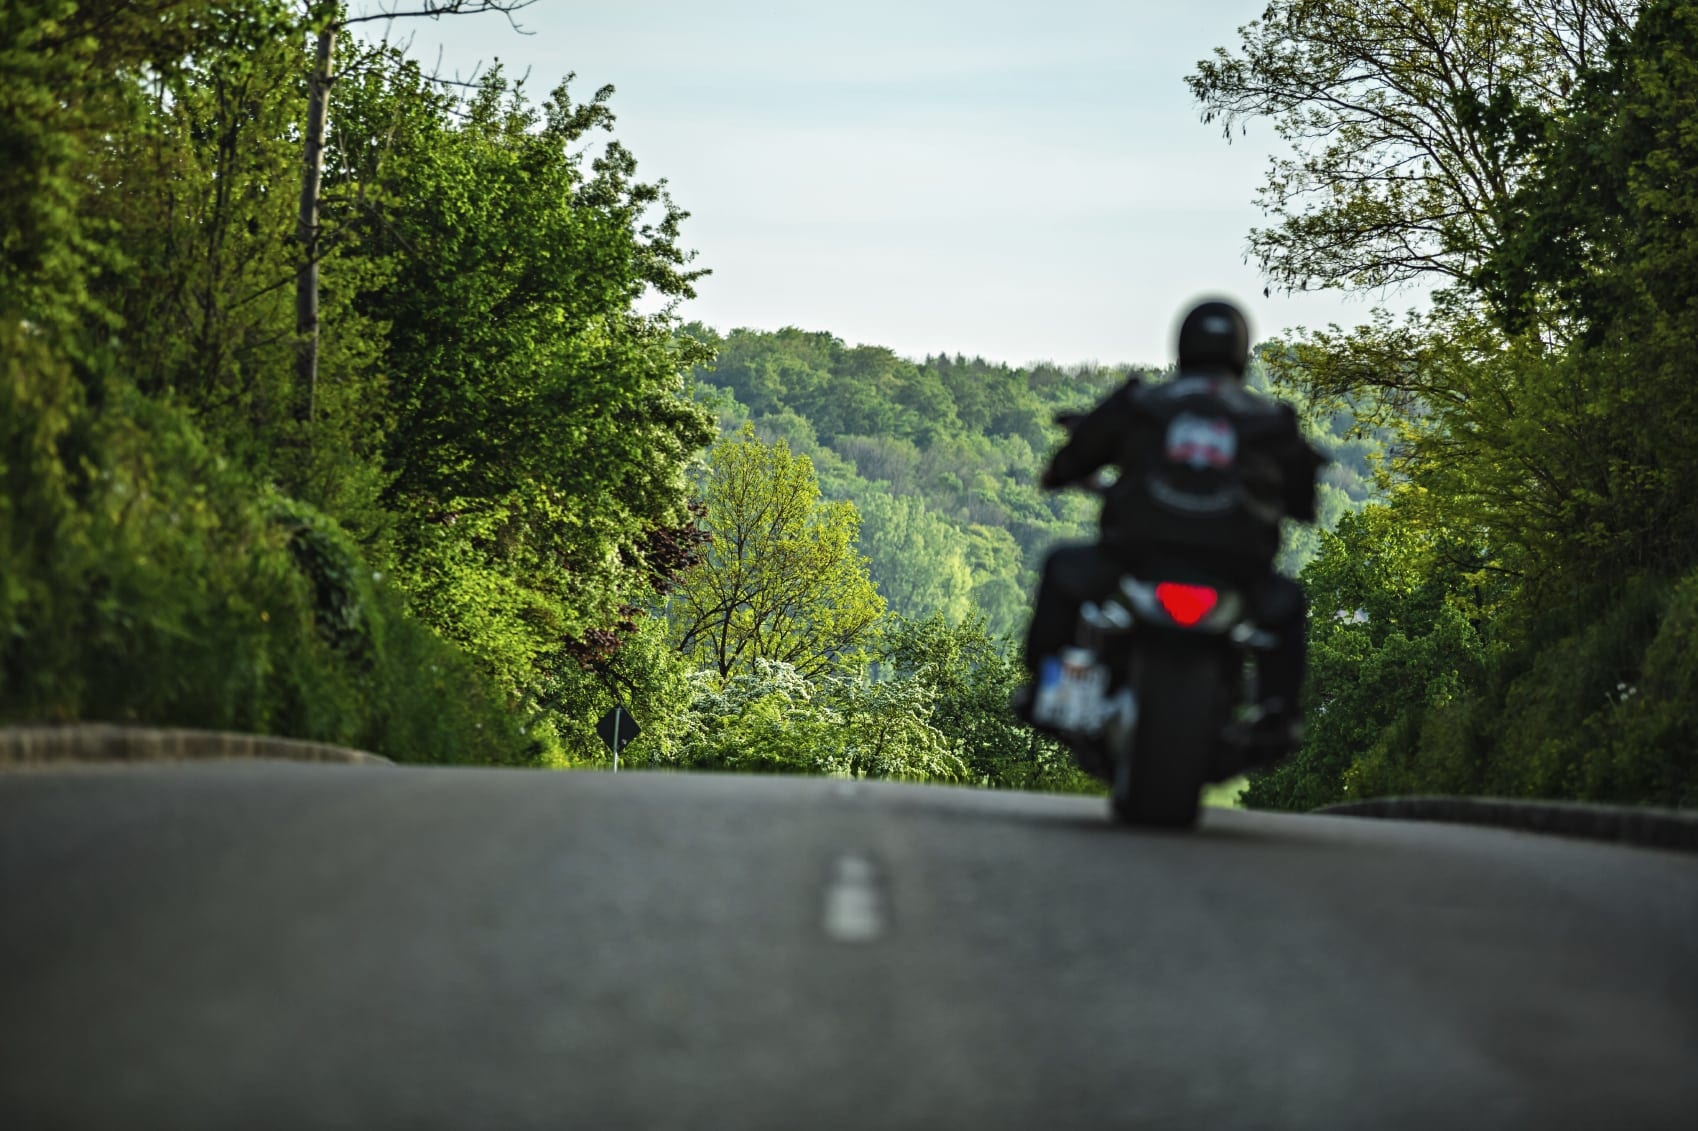 Motorcyclist Riding In Rural Area Stock Photo